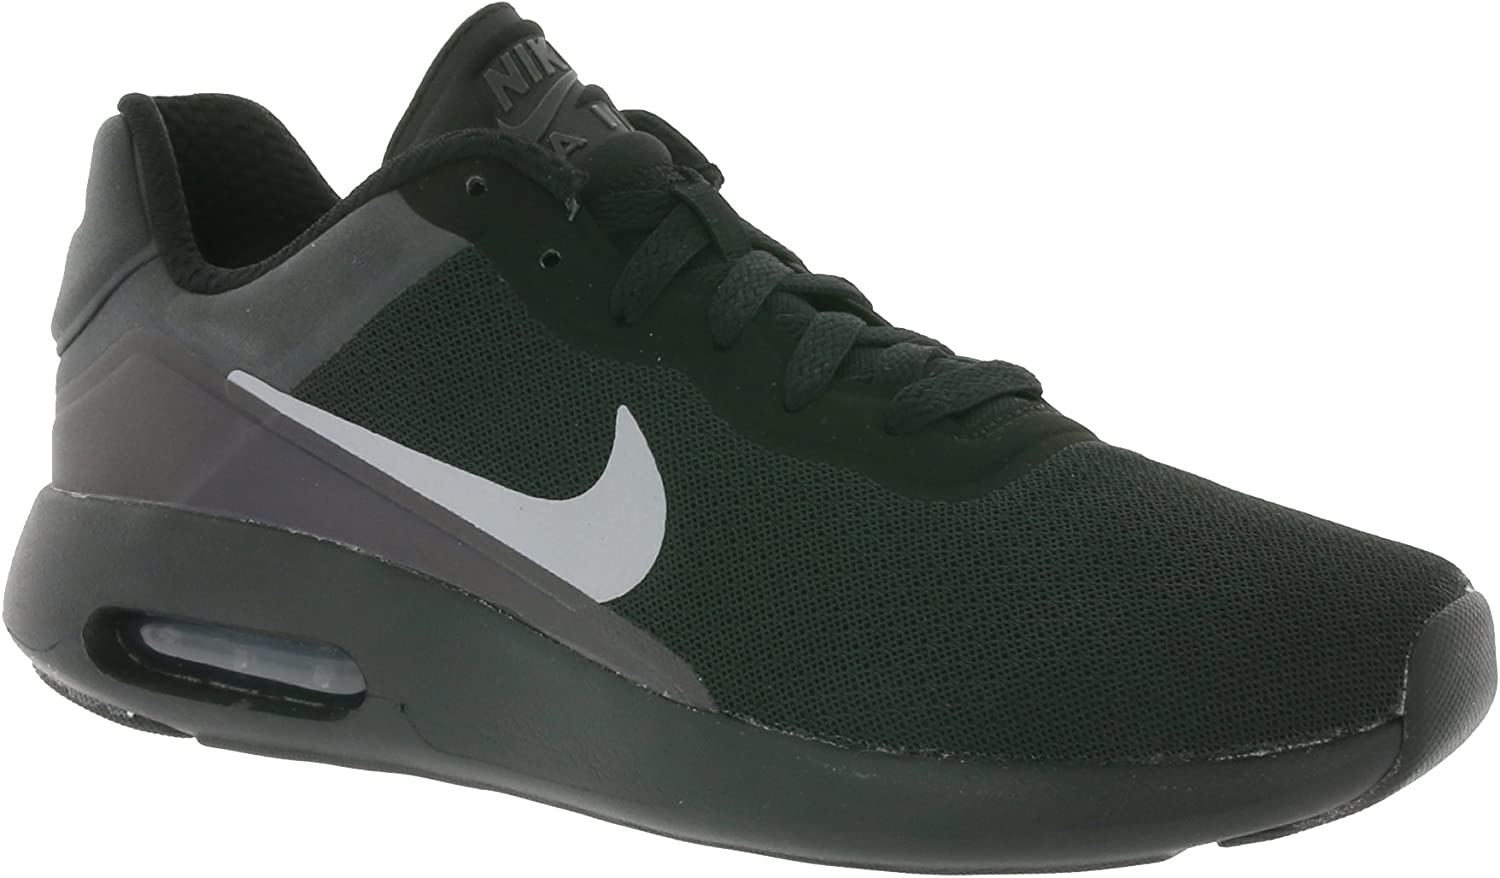 Nike Mens Air Max Modern SE Round Toe Lace-up Running shoes